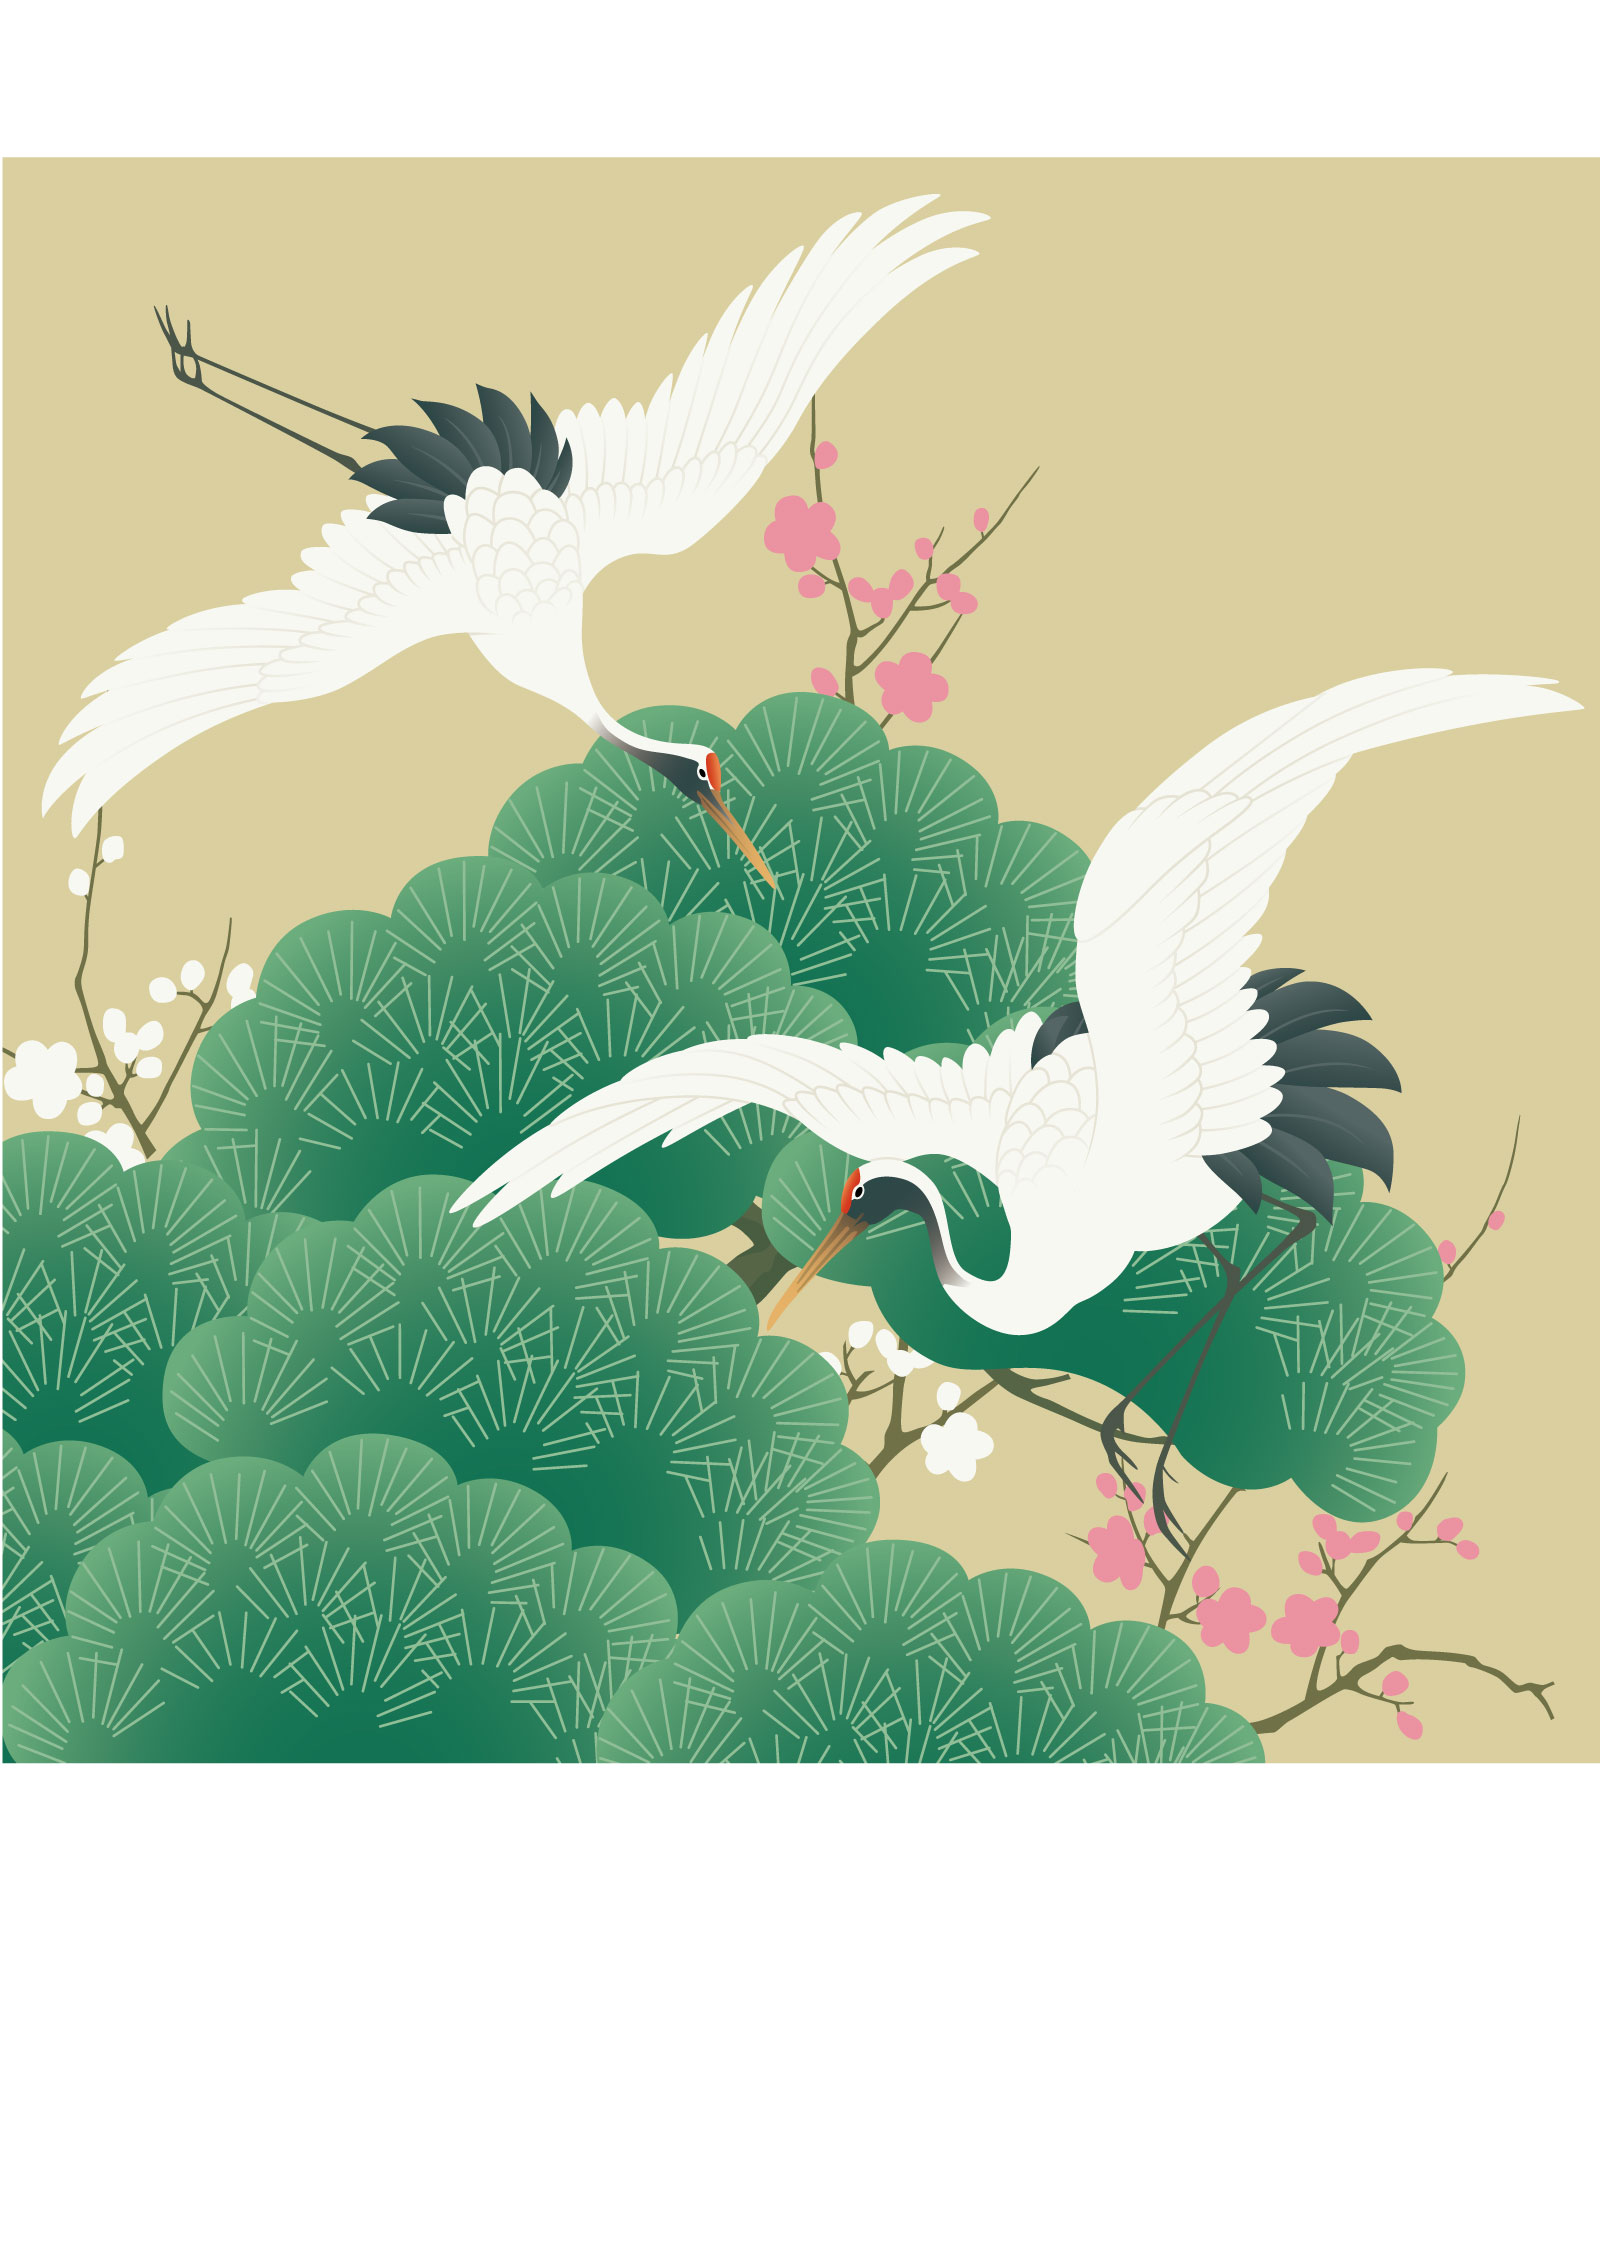 chinesefontdesign.com 2017 03 04 09 59 06 The traditional Chinese painting style cranes  Illustrations Vectors AI Free Download